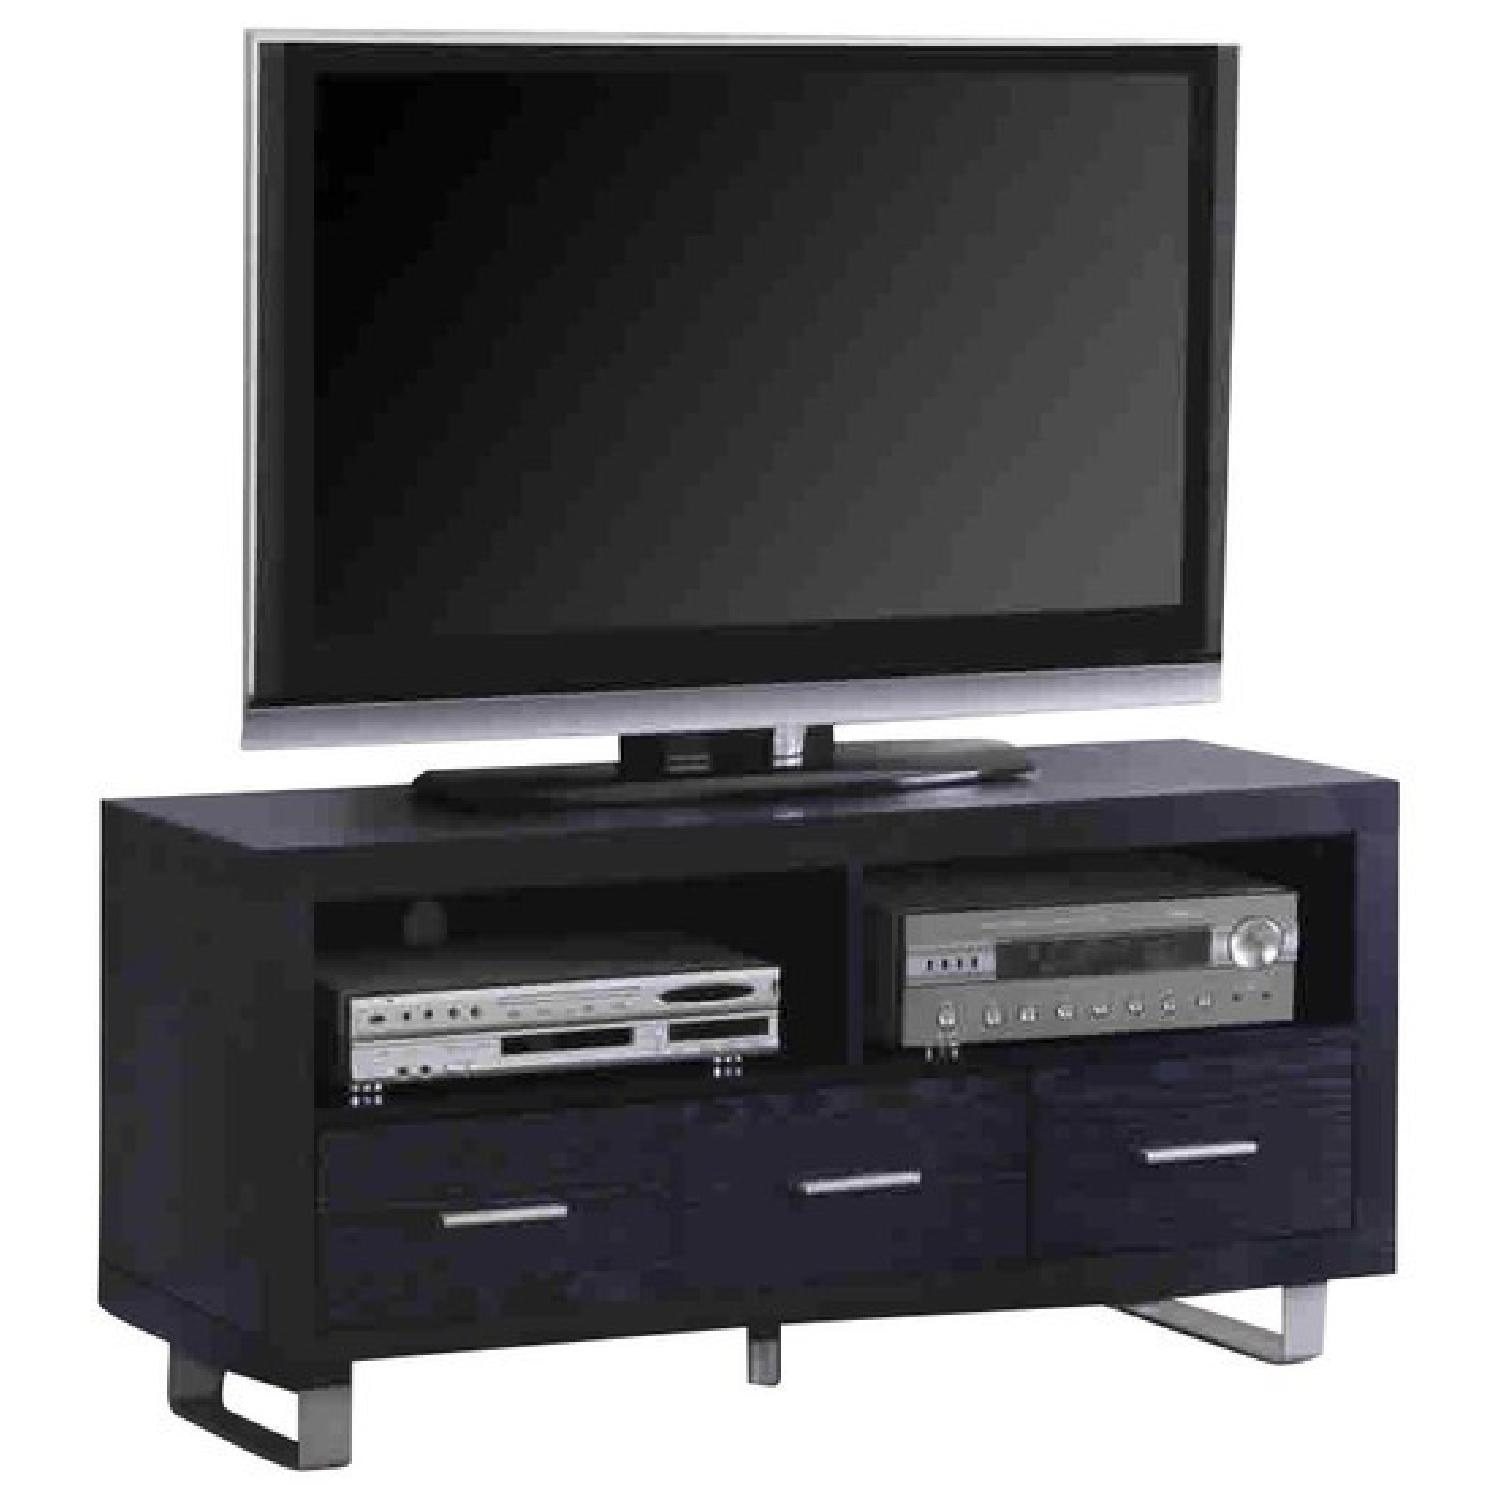 Contemporary Black TV Stand w/ Two Compartments & Three Storage Drawers w/ Bushed Silver Hardware & Legs